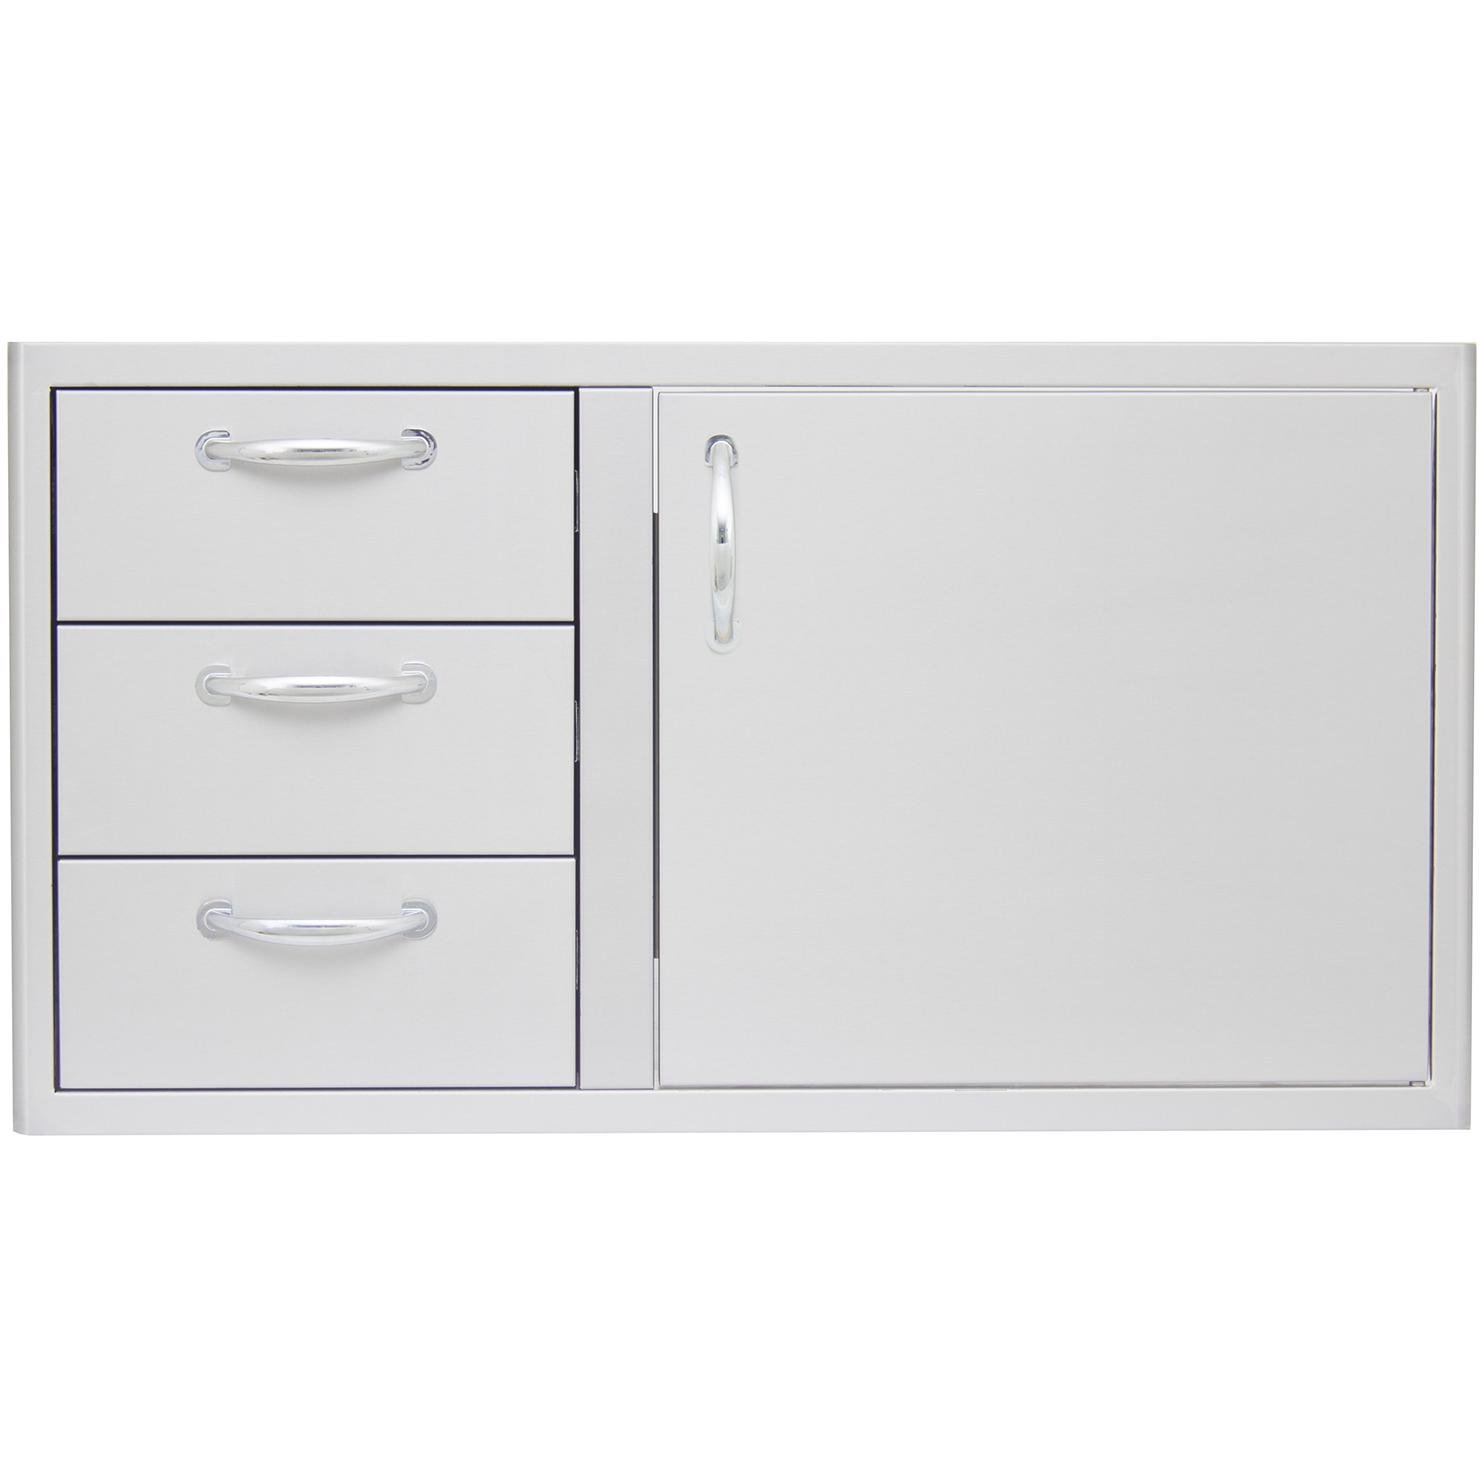 Blaze Outdoor Products 39-inch Access Door and Triple Drawer Combo